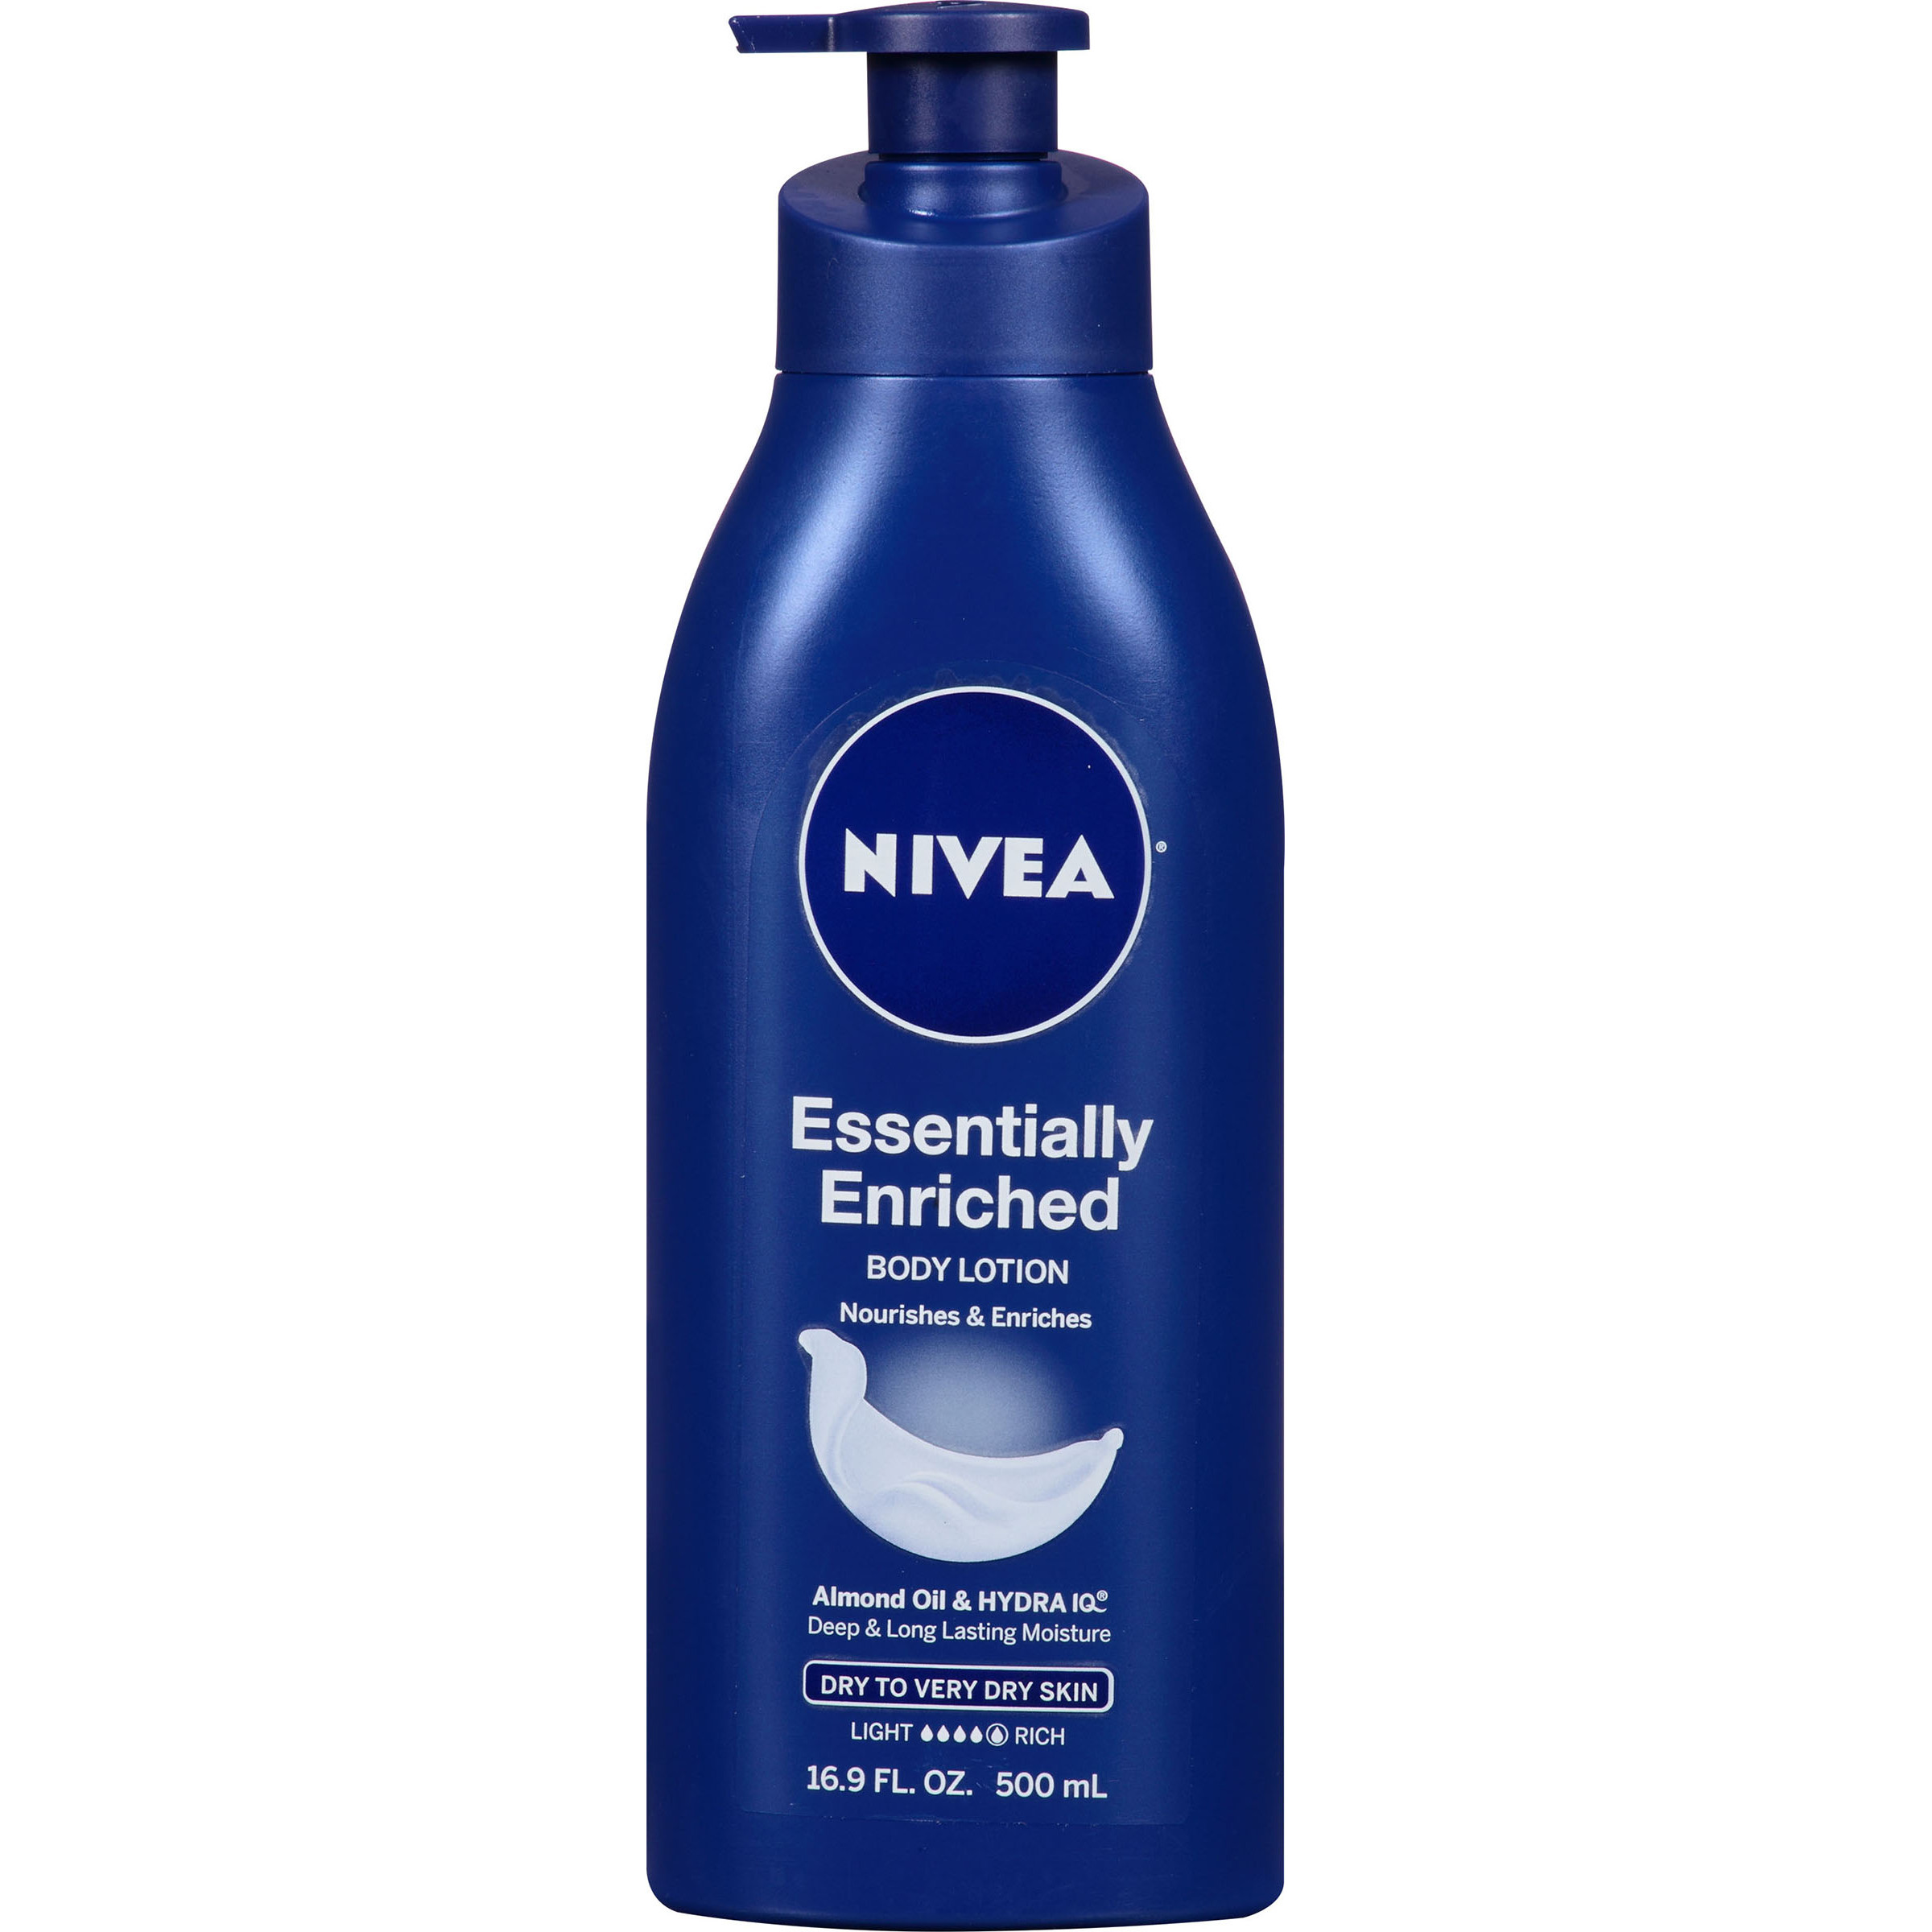 NIVEA® Essentially Enriched Body Lotion 16.9 fl. oz.